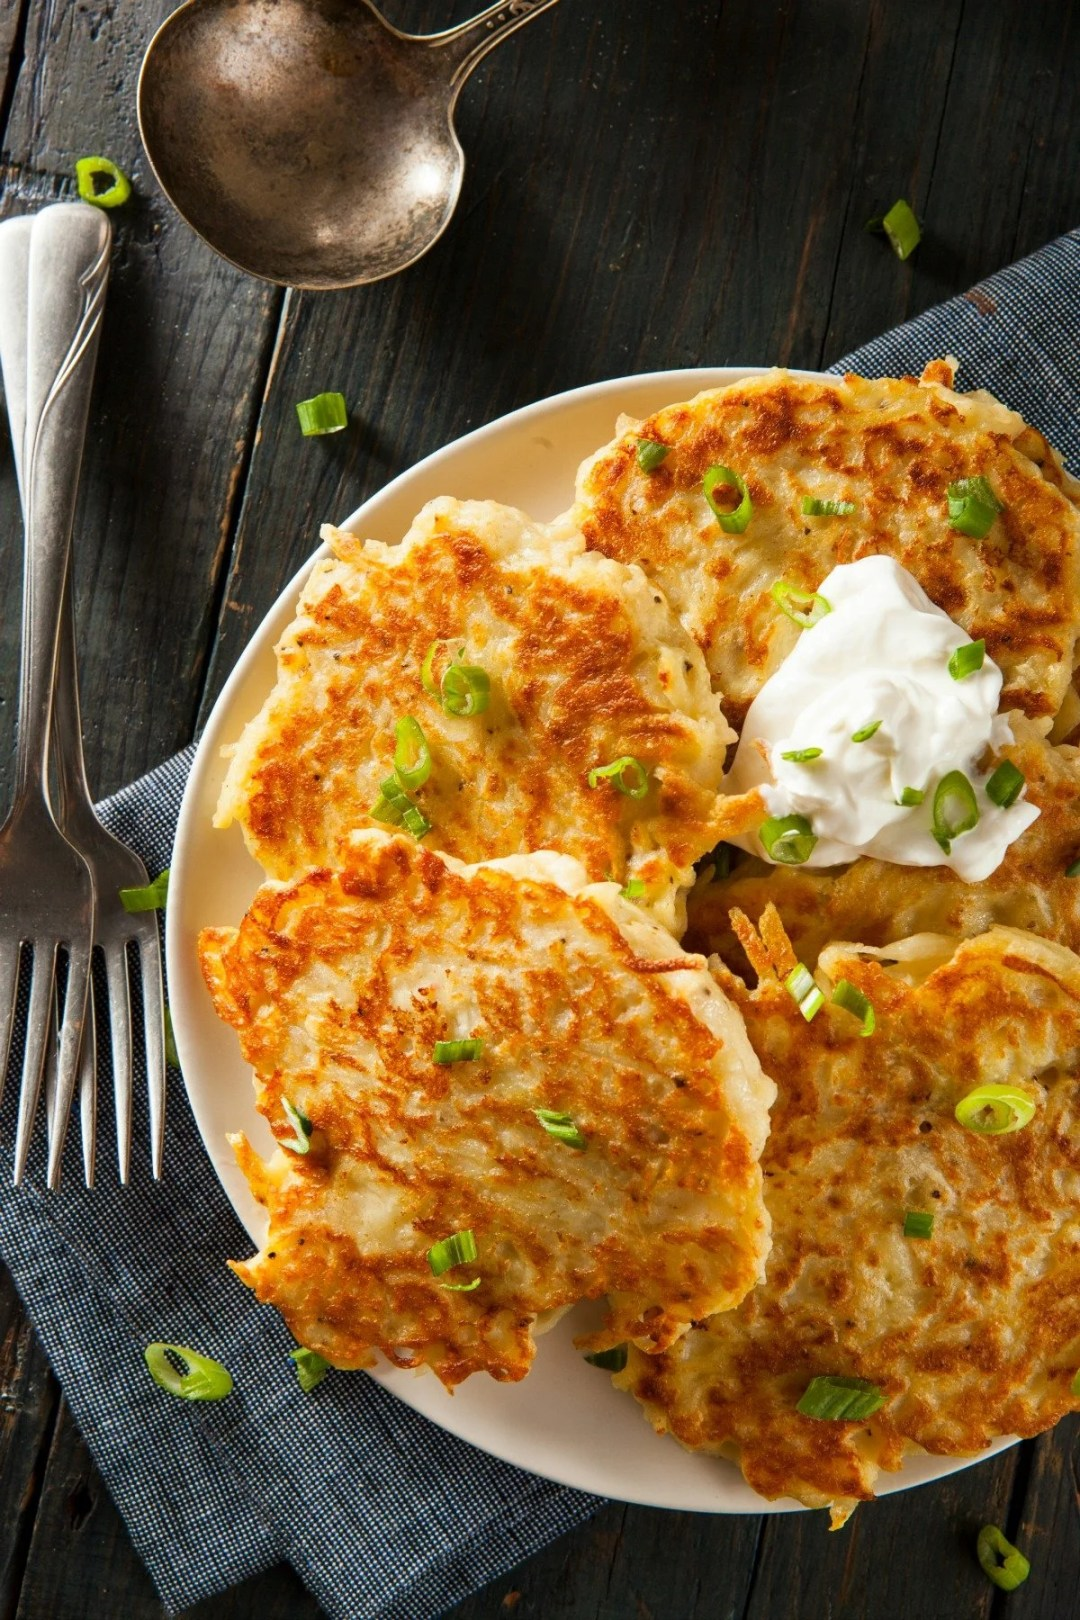 Traditional Irish Food - Homemade Boxty Irish Potato Pancakes for Breakfast